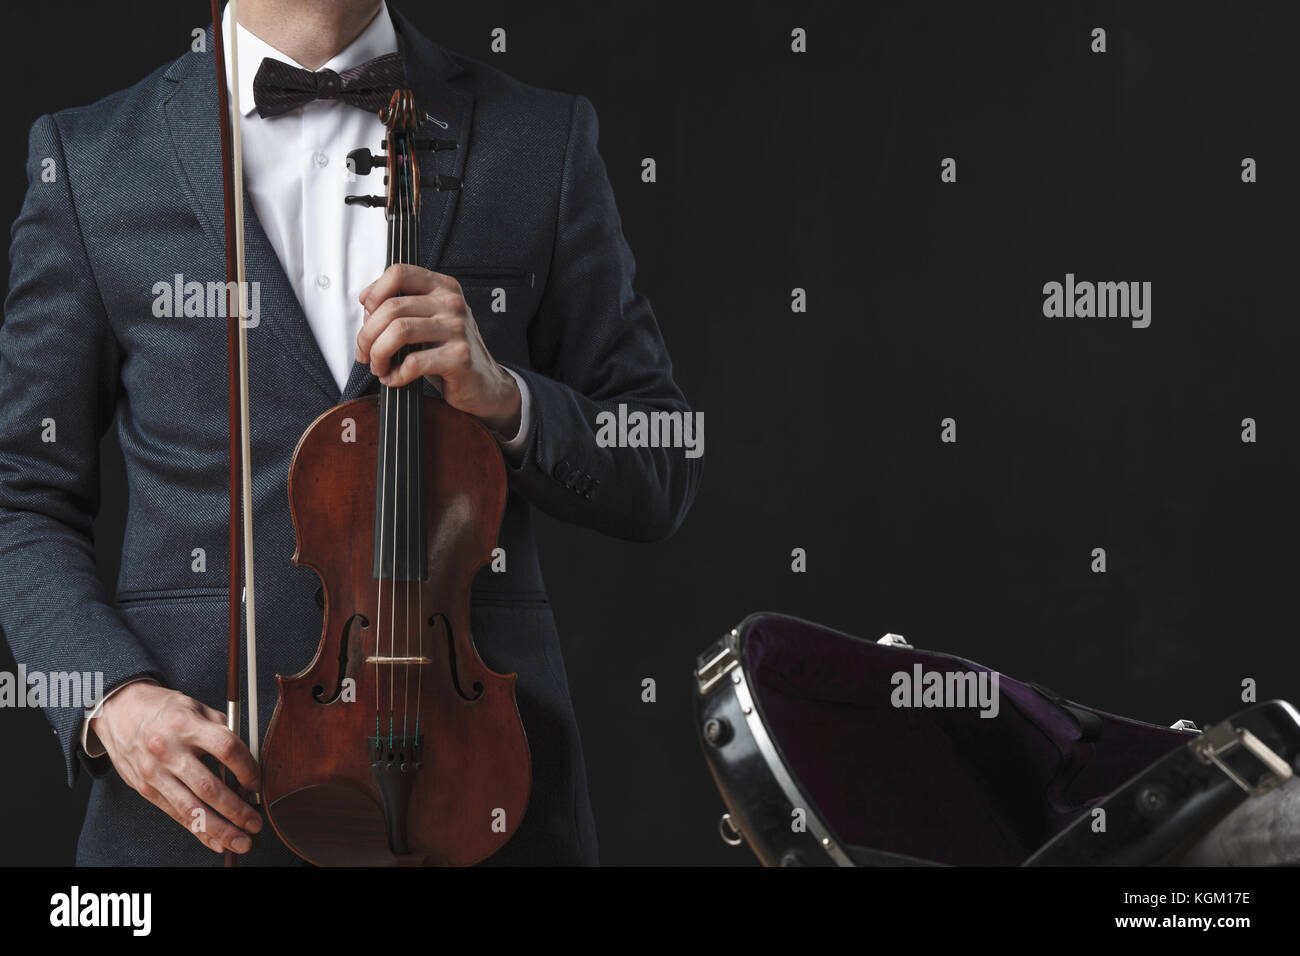 Midsection of man holding violin while standing by case against black background - Stock Image